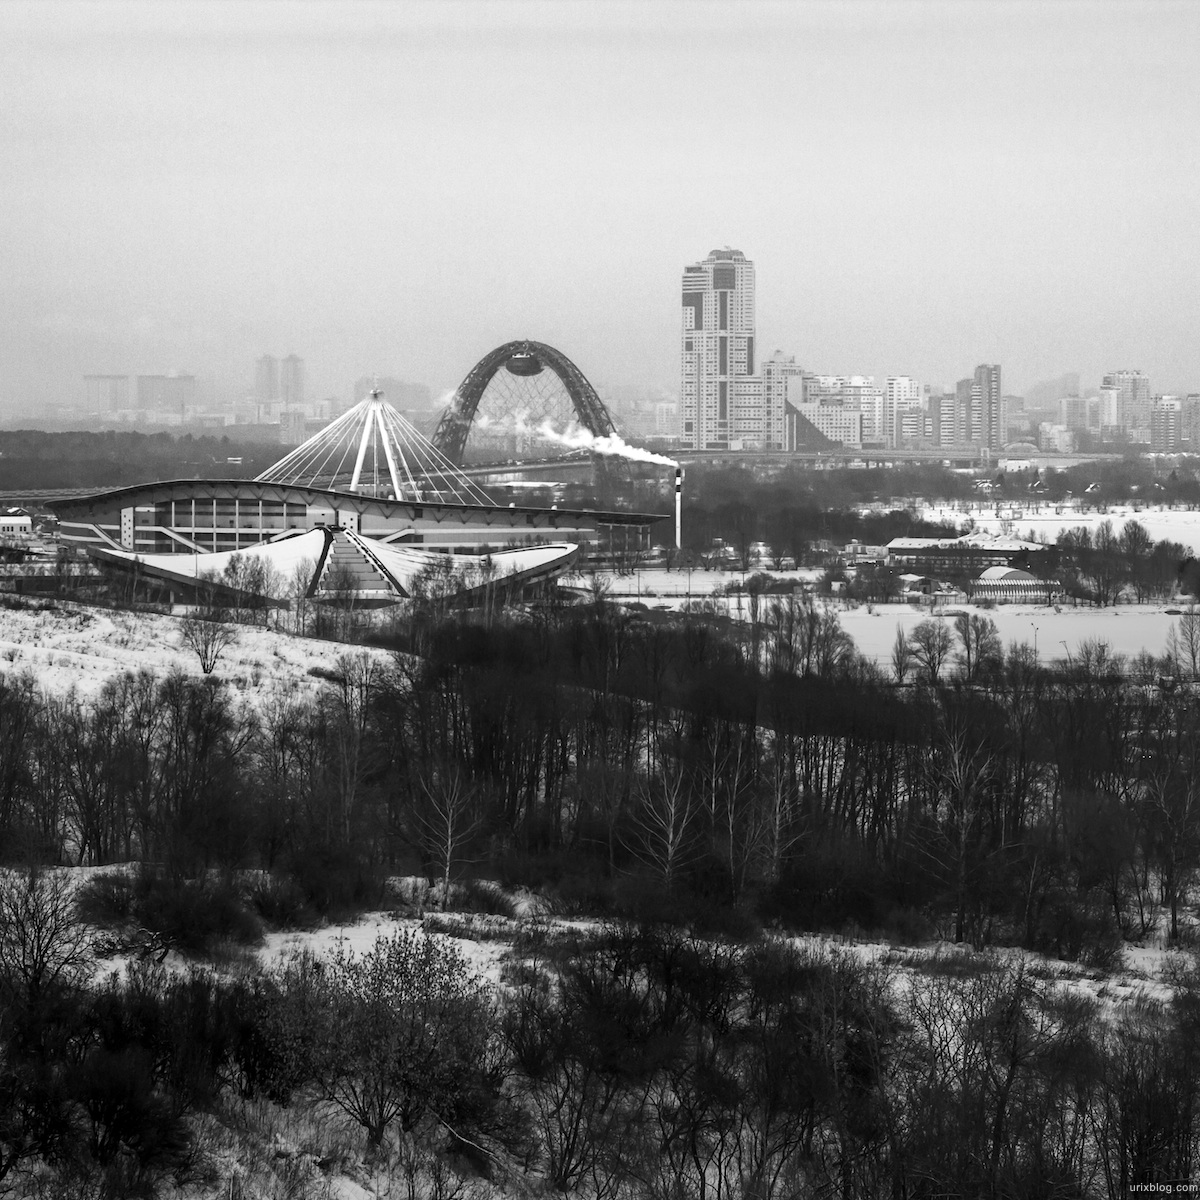 2012, Krylatsky hills, Moscow, Russia, winter, snow, Zhivopisny bridge